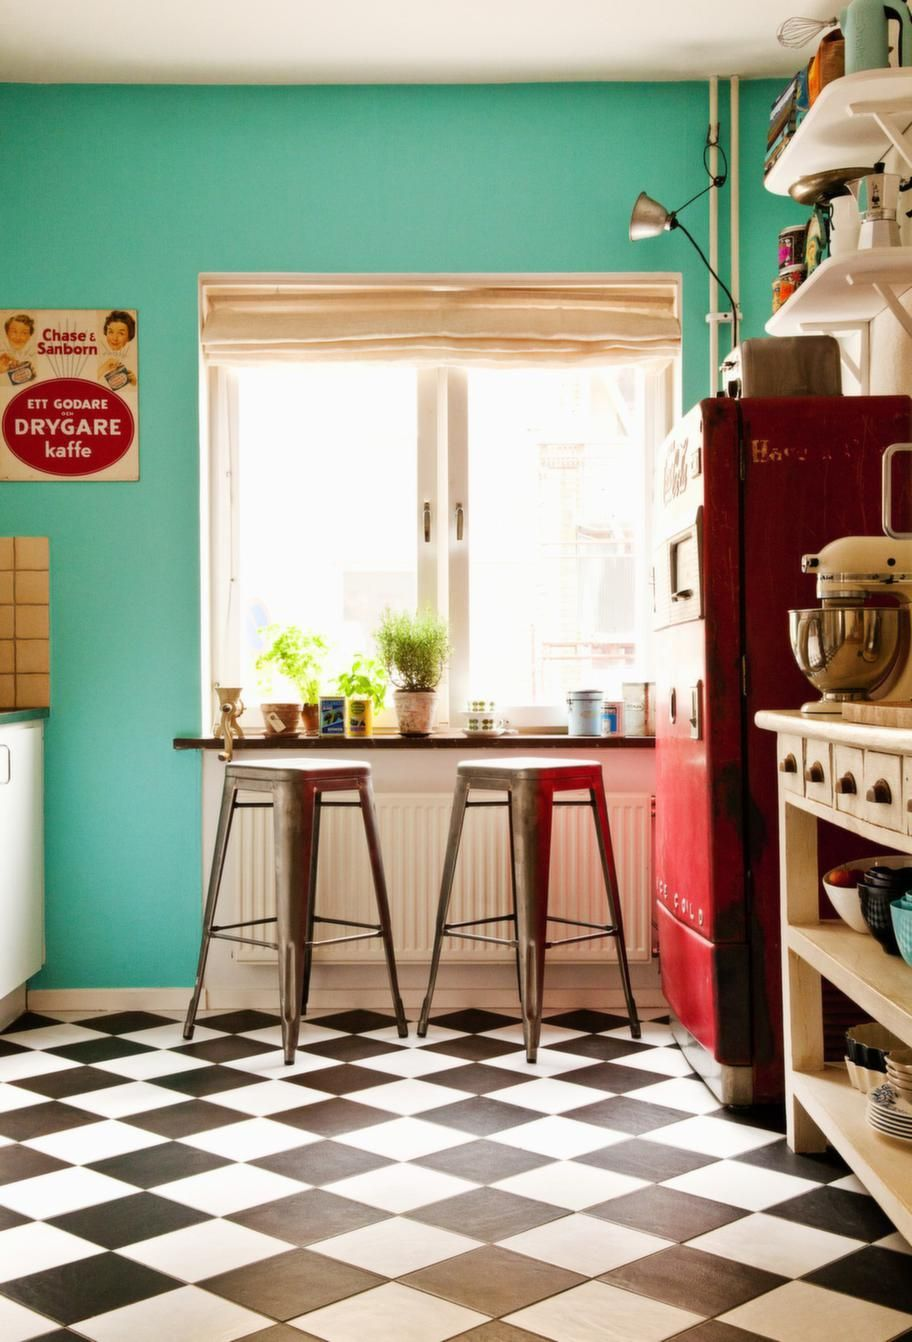 Checkered Kitchen Floor Teal And Red Kitchen Black And White Checkered Floor Home